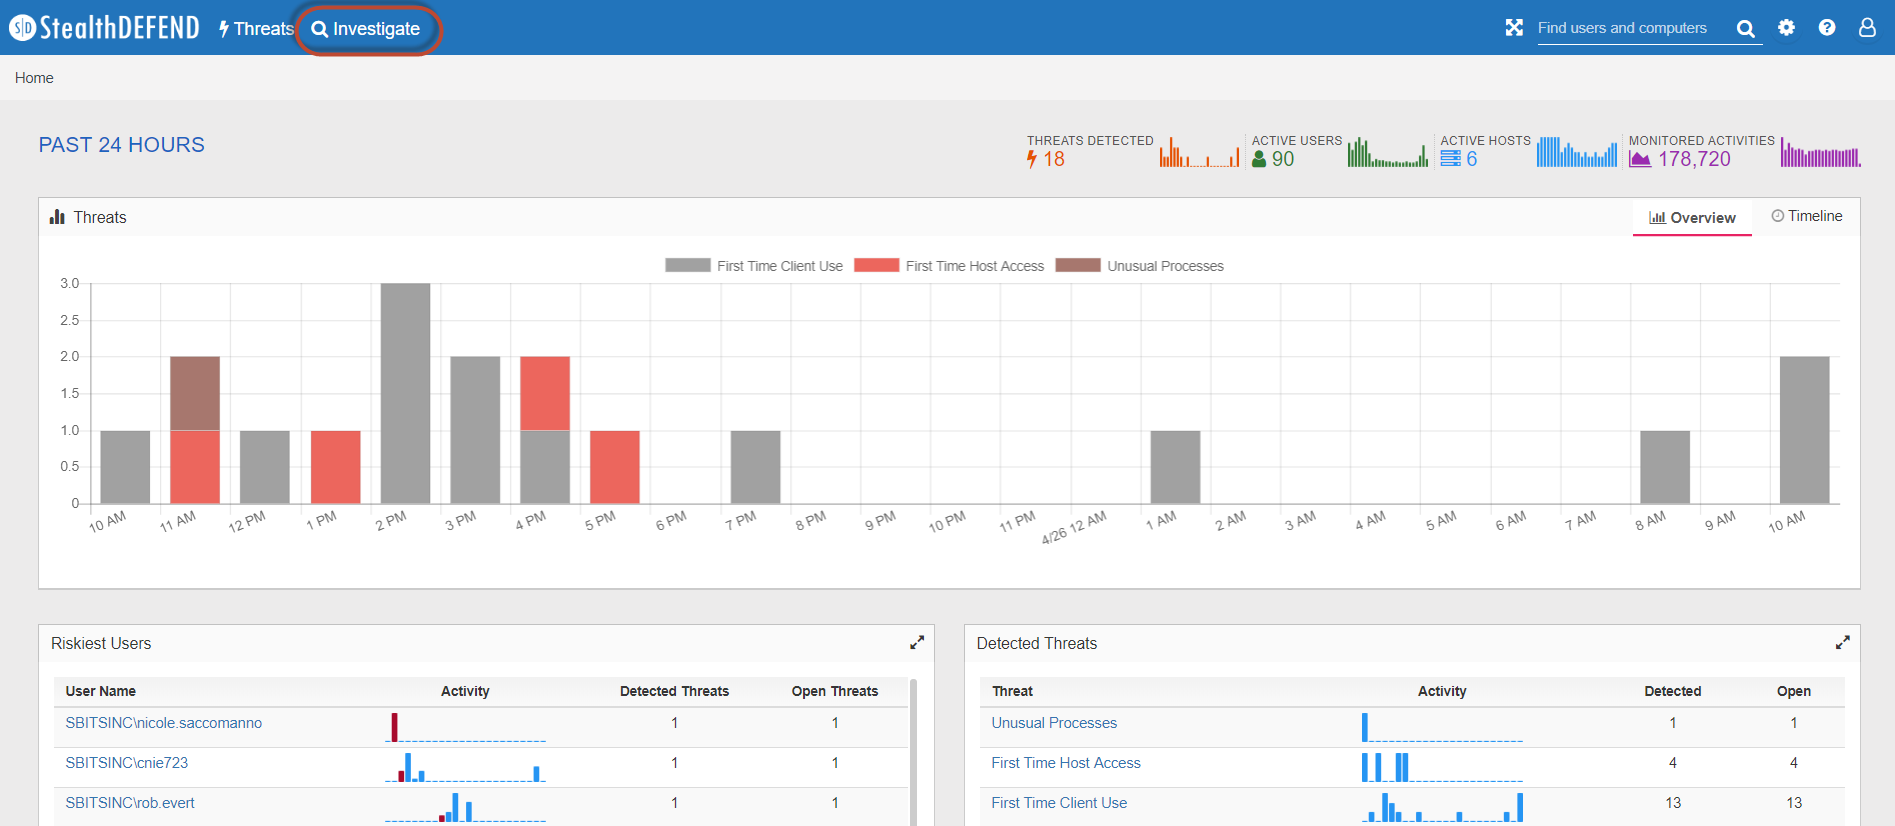 StealthDEFEND 1.1, StealthDEFEND 1.1 Investigate, Threat Analytics, Investigate Threats